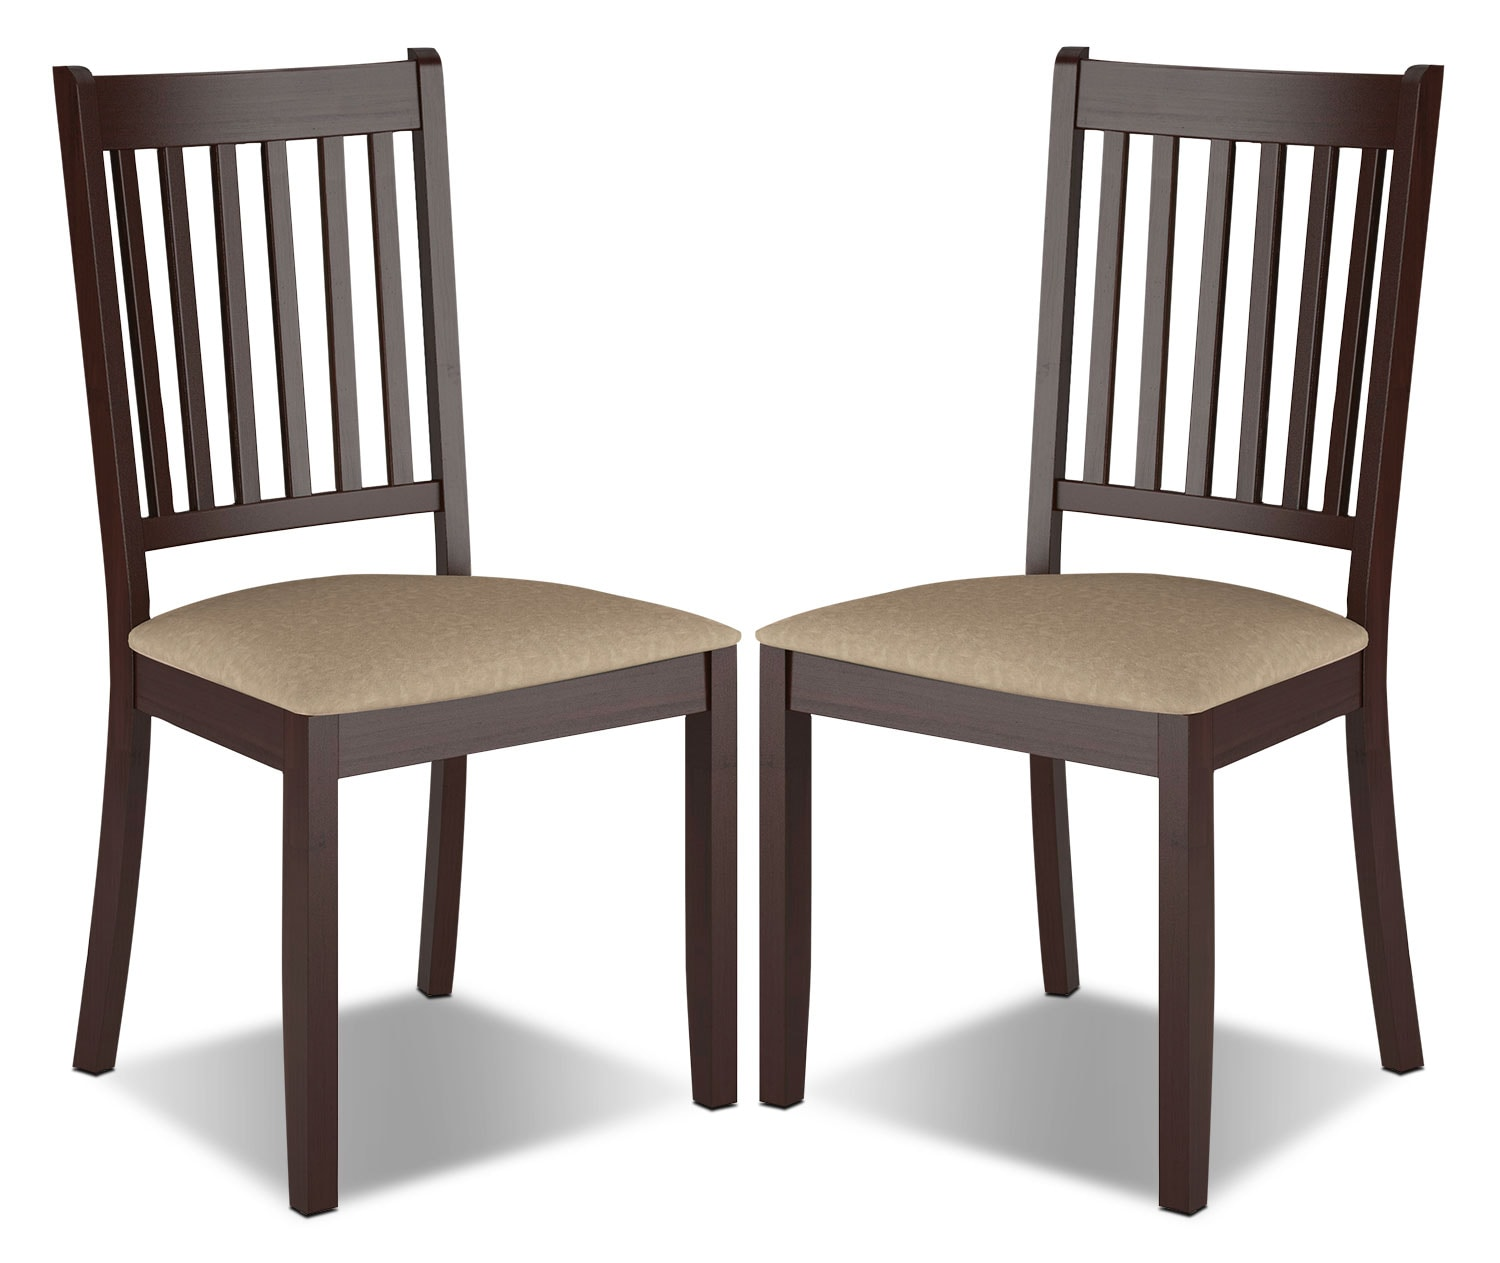 Atwood Dining Chair with Microfibre Seat, Set of 2 – Beige ...